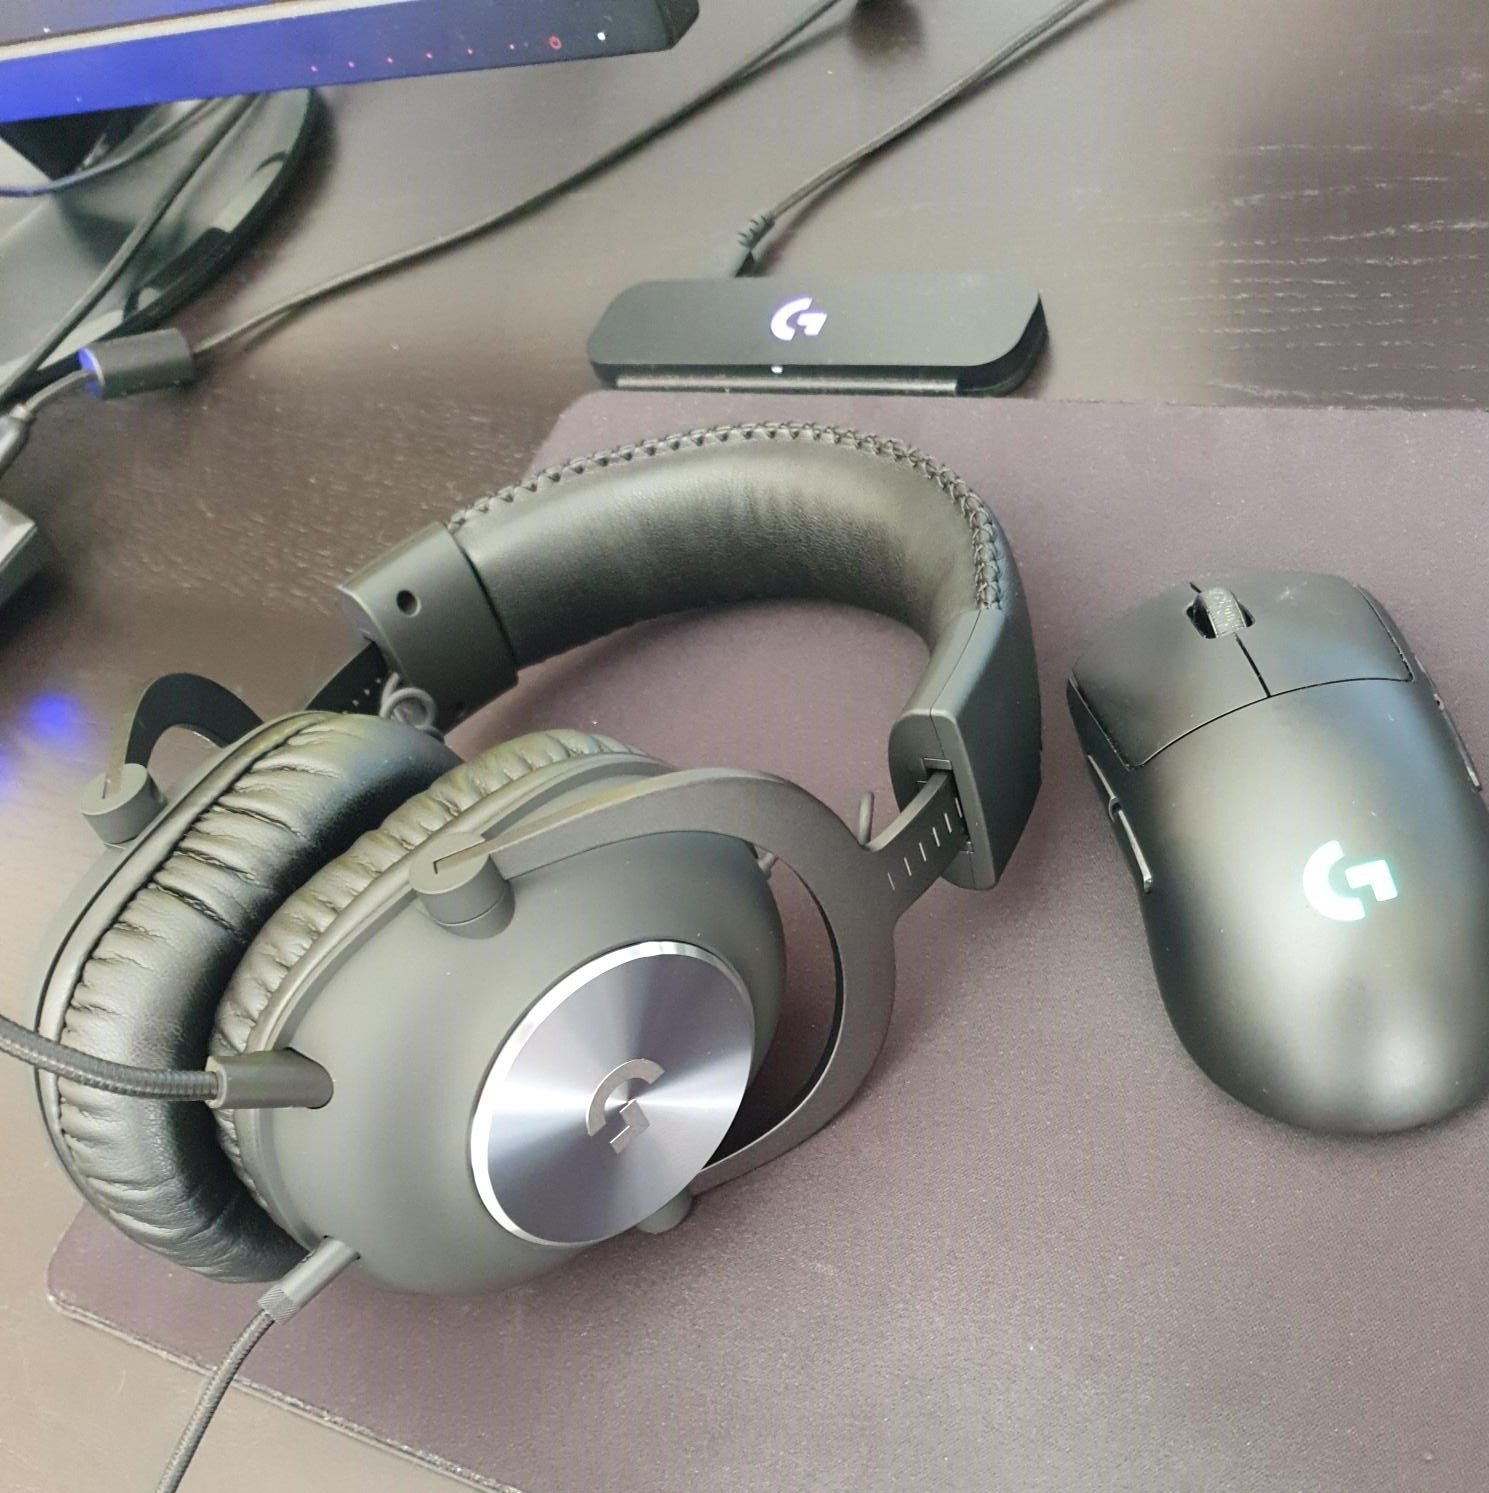 Image of Logitech G Pro mouse and headset